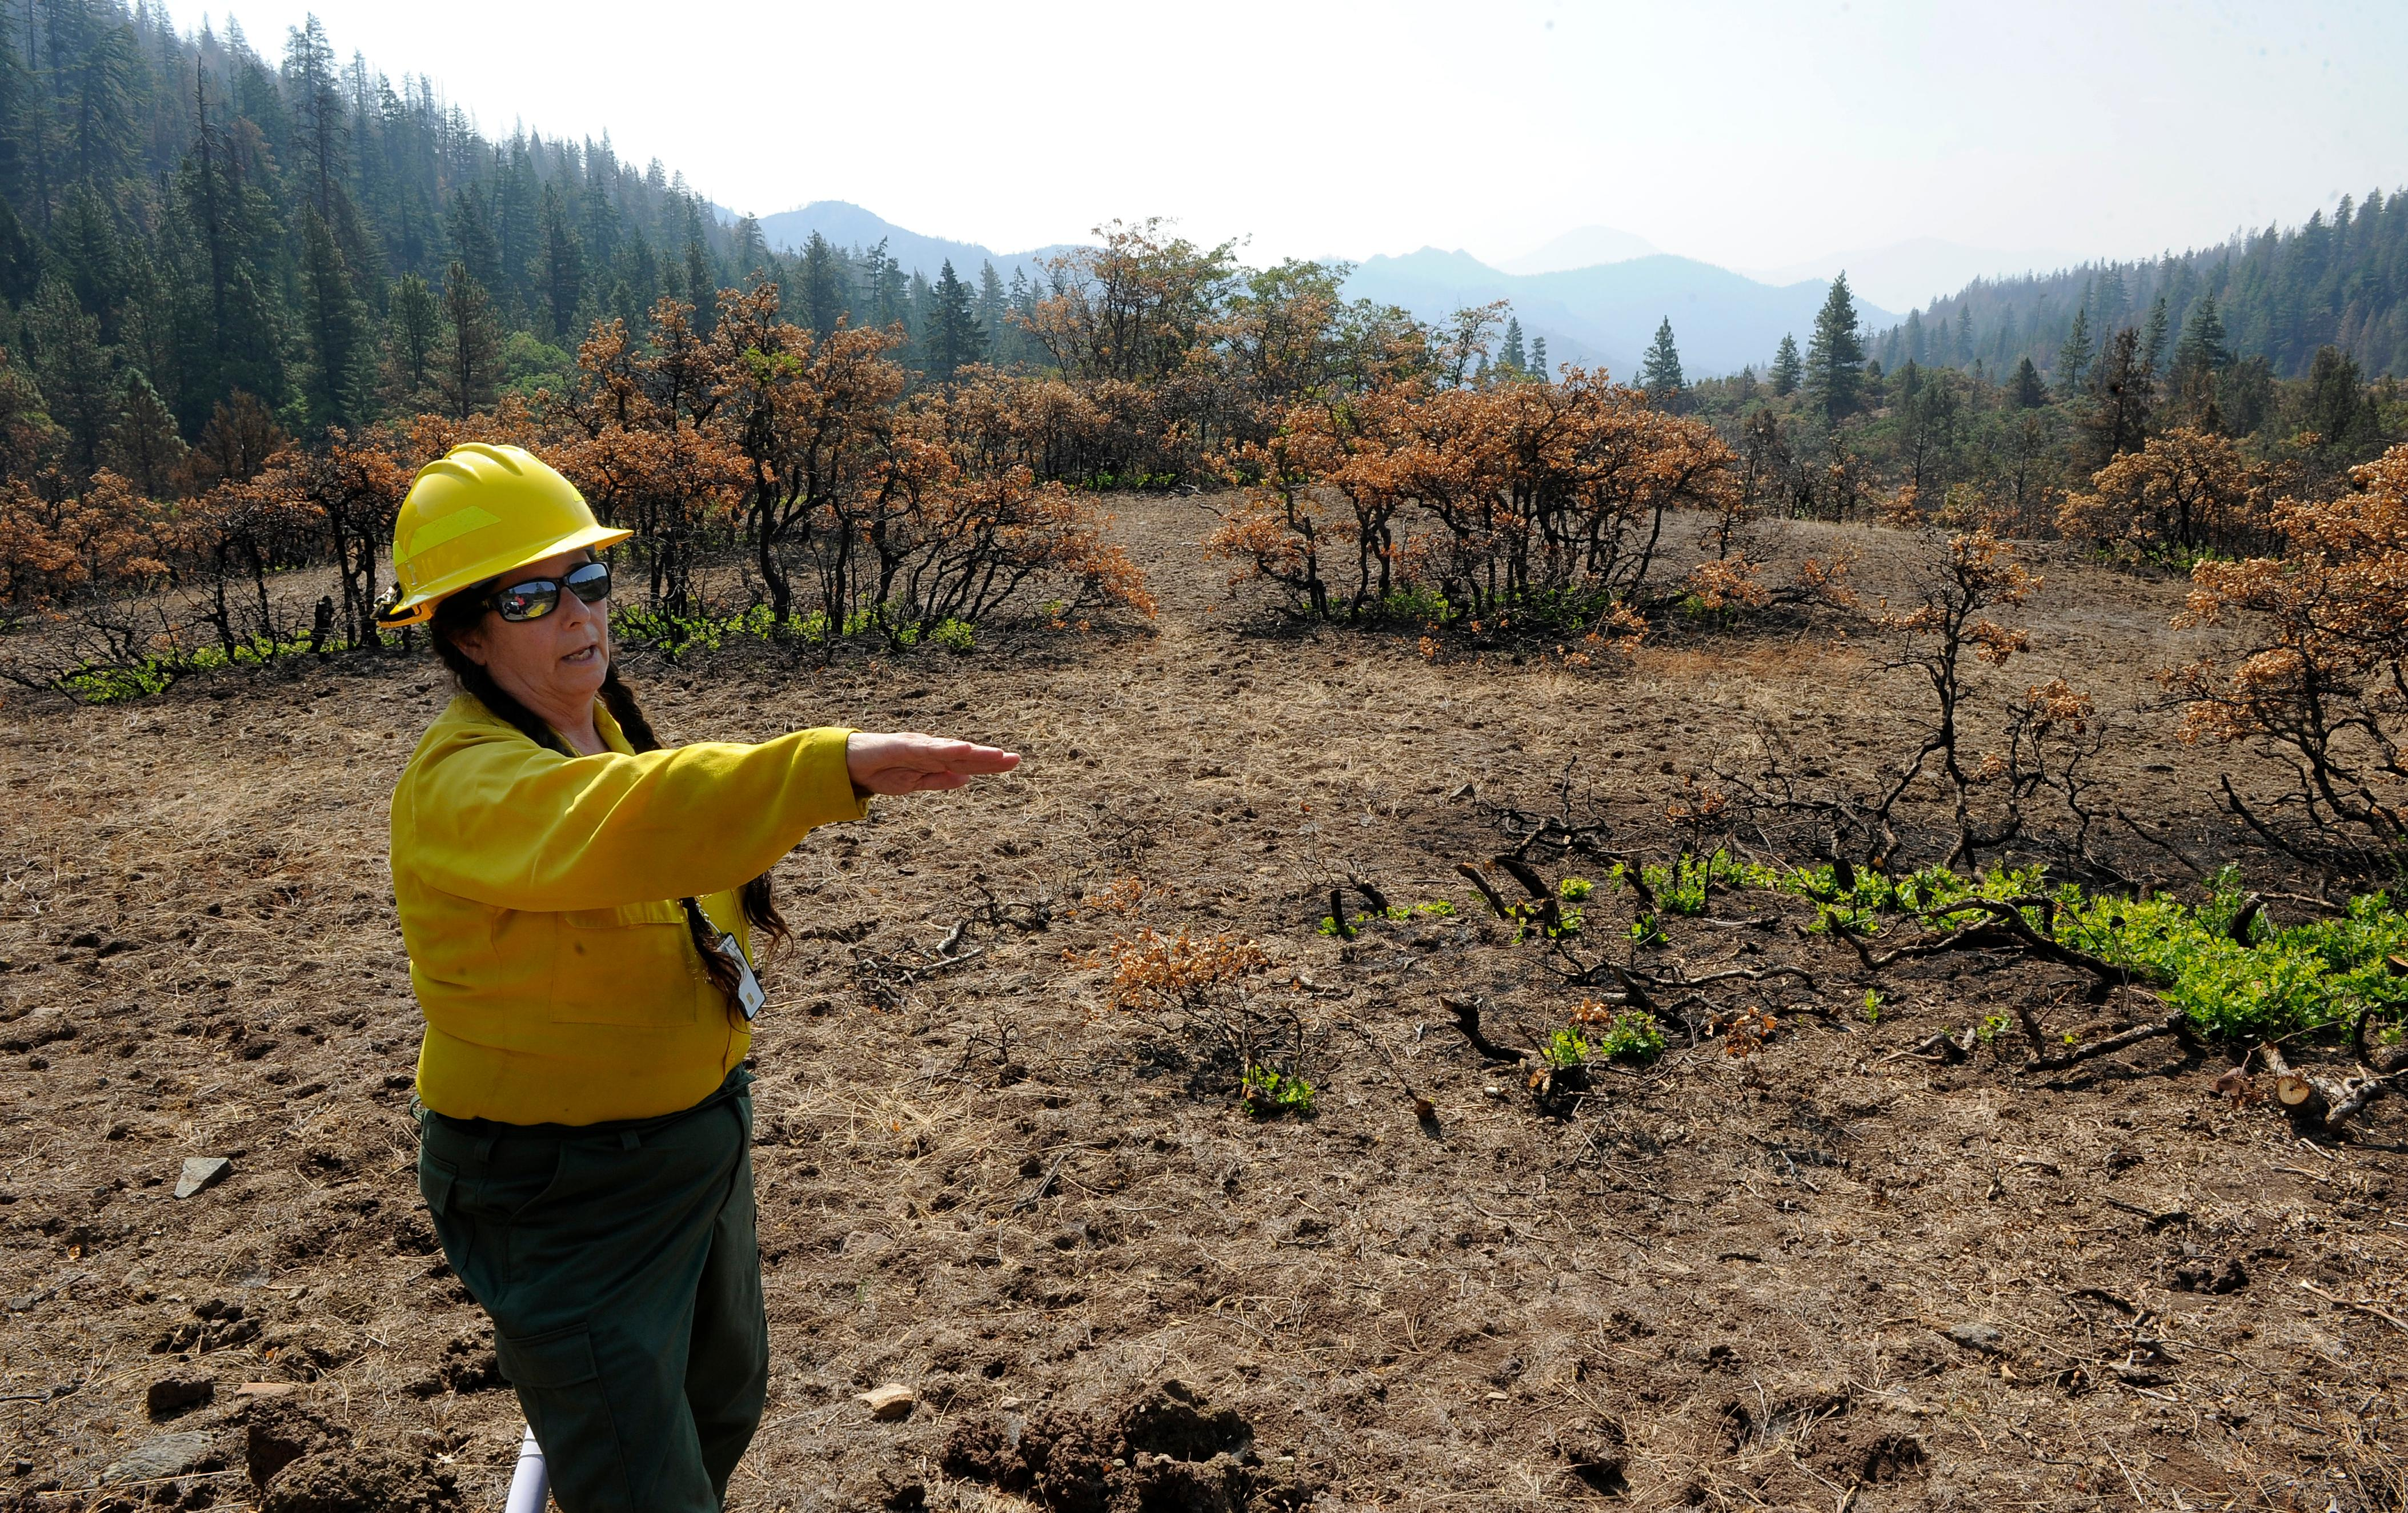 Andy Atkinson / Mail Tribune<br>Kristi Mastrofini stands near where the Klamathon fire crossed the border south of Pilot Rock where dozers were used for fire lines.